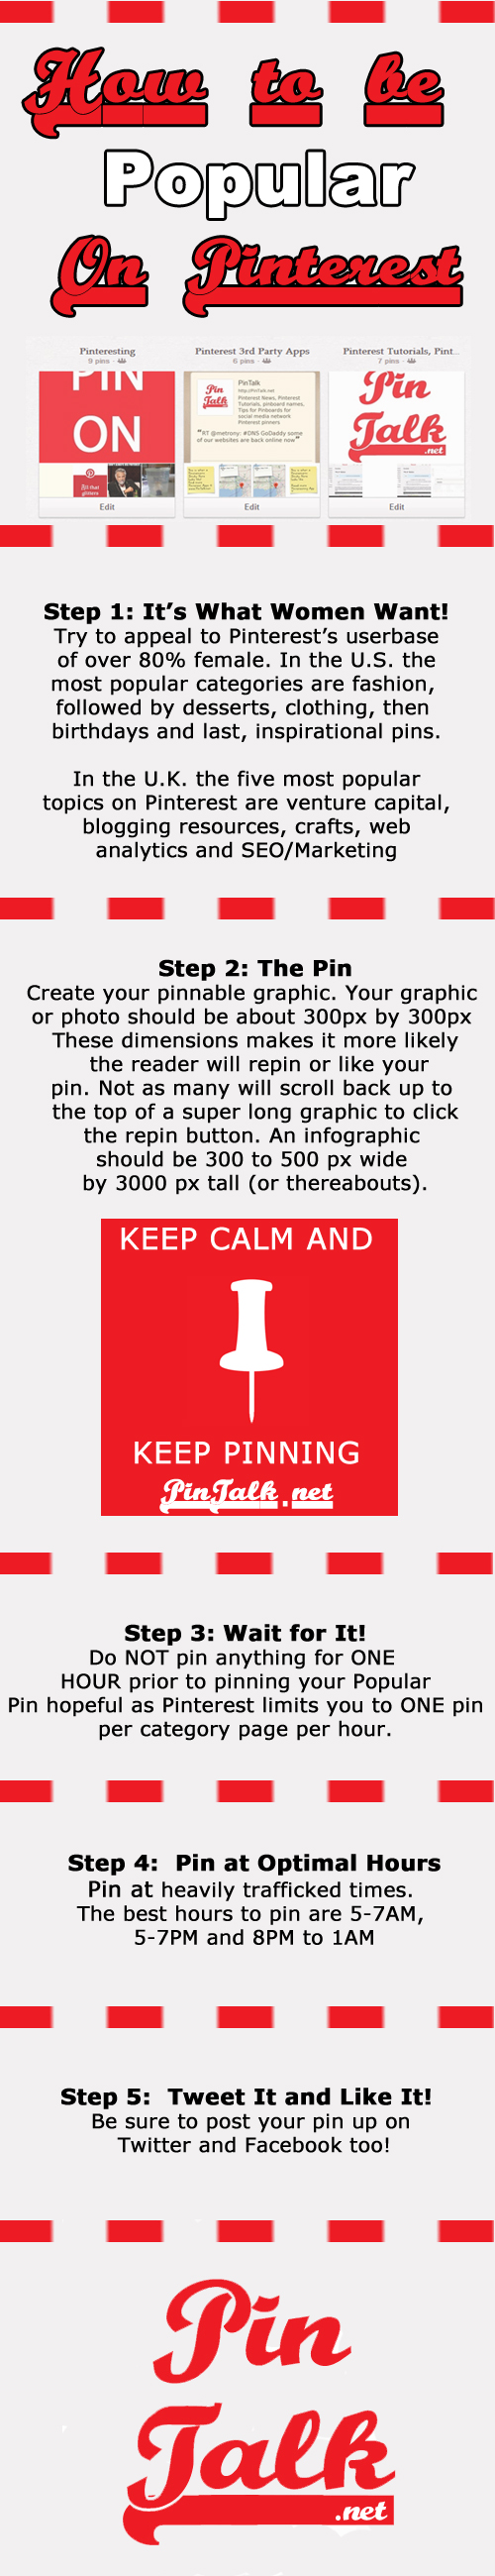 Pinterest Popular Pin Infographic